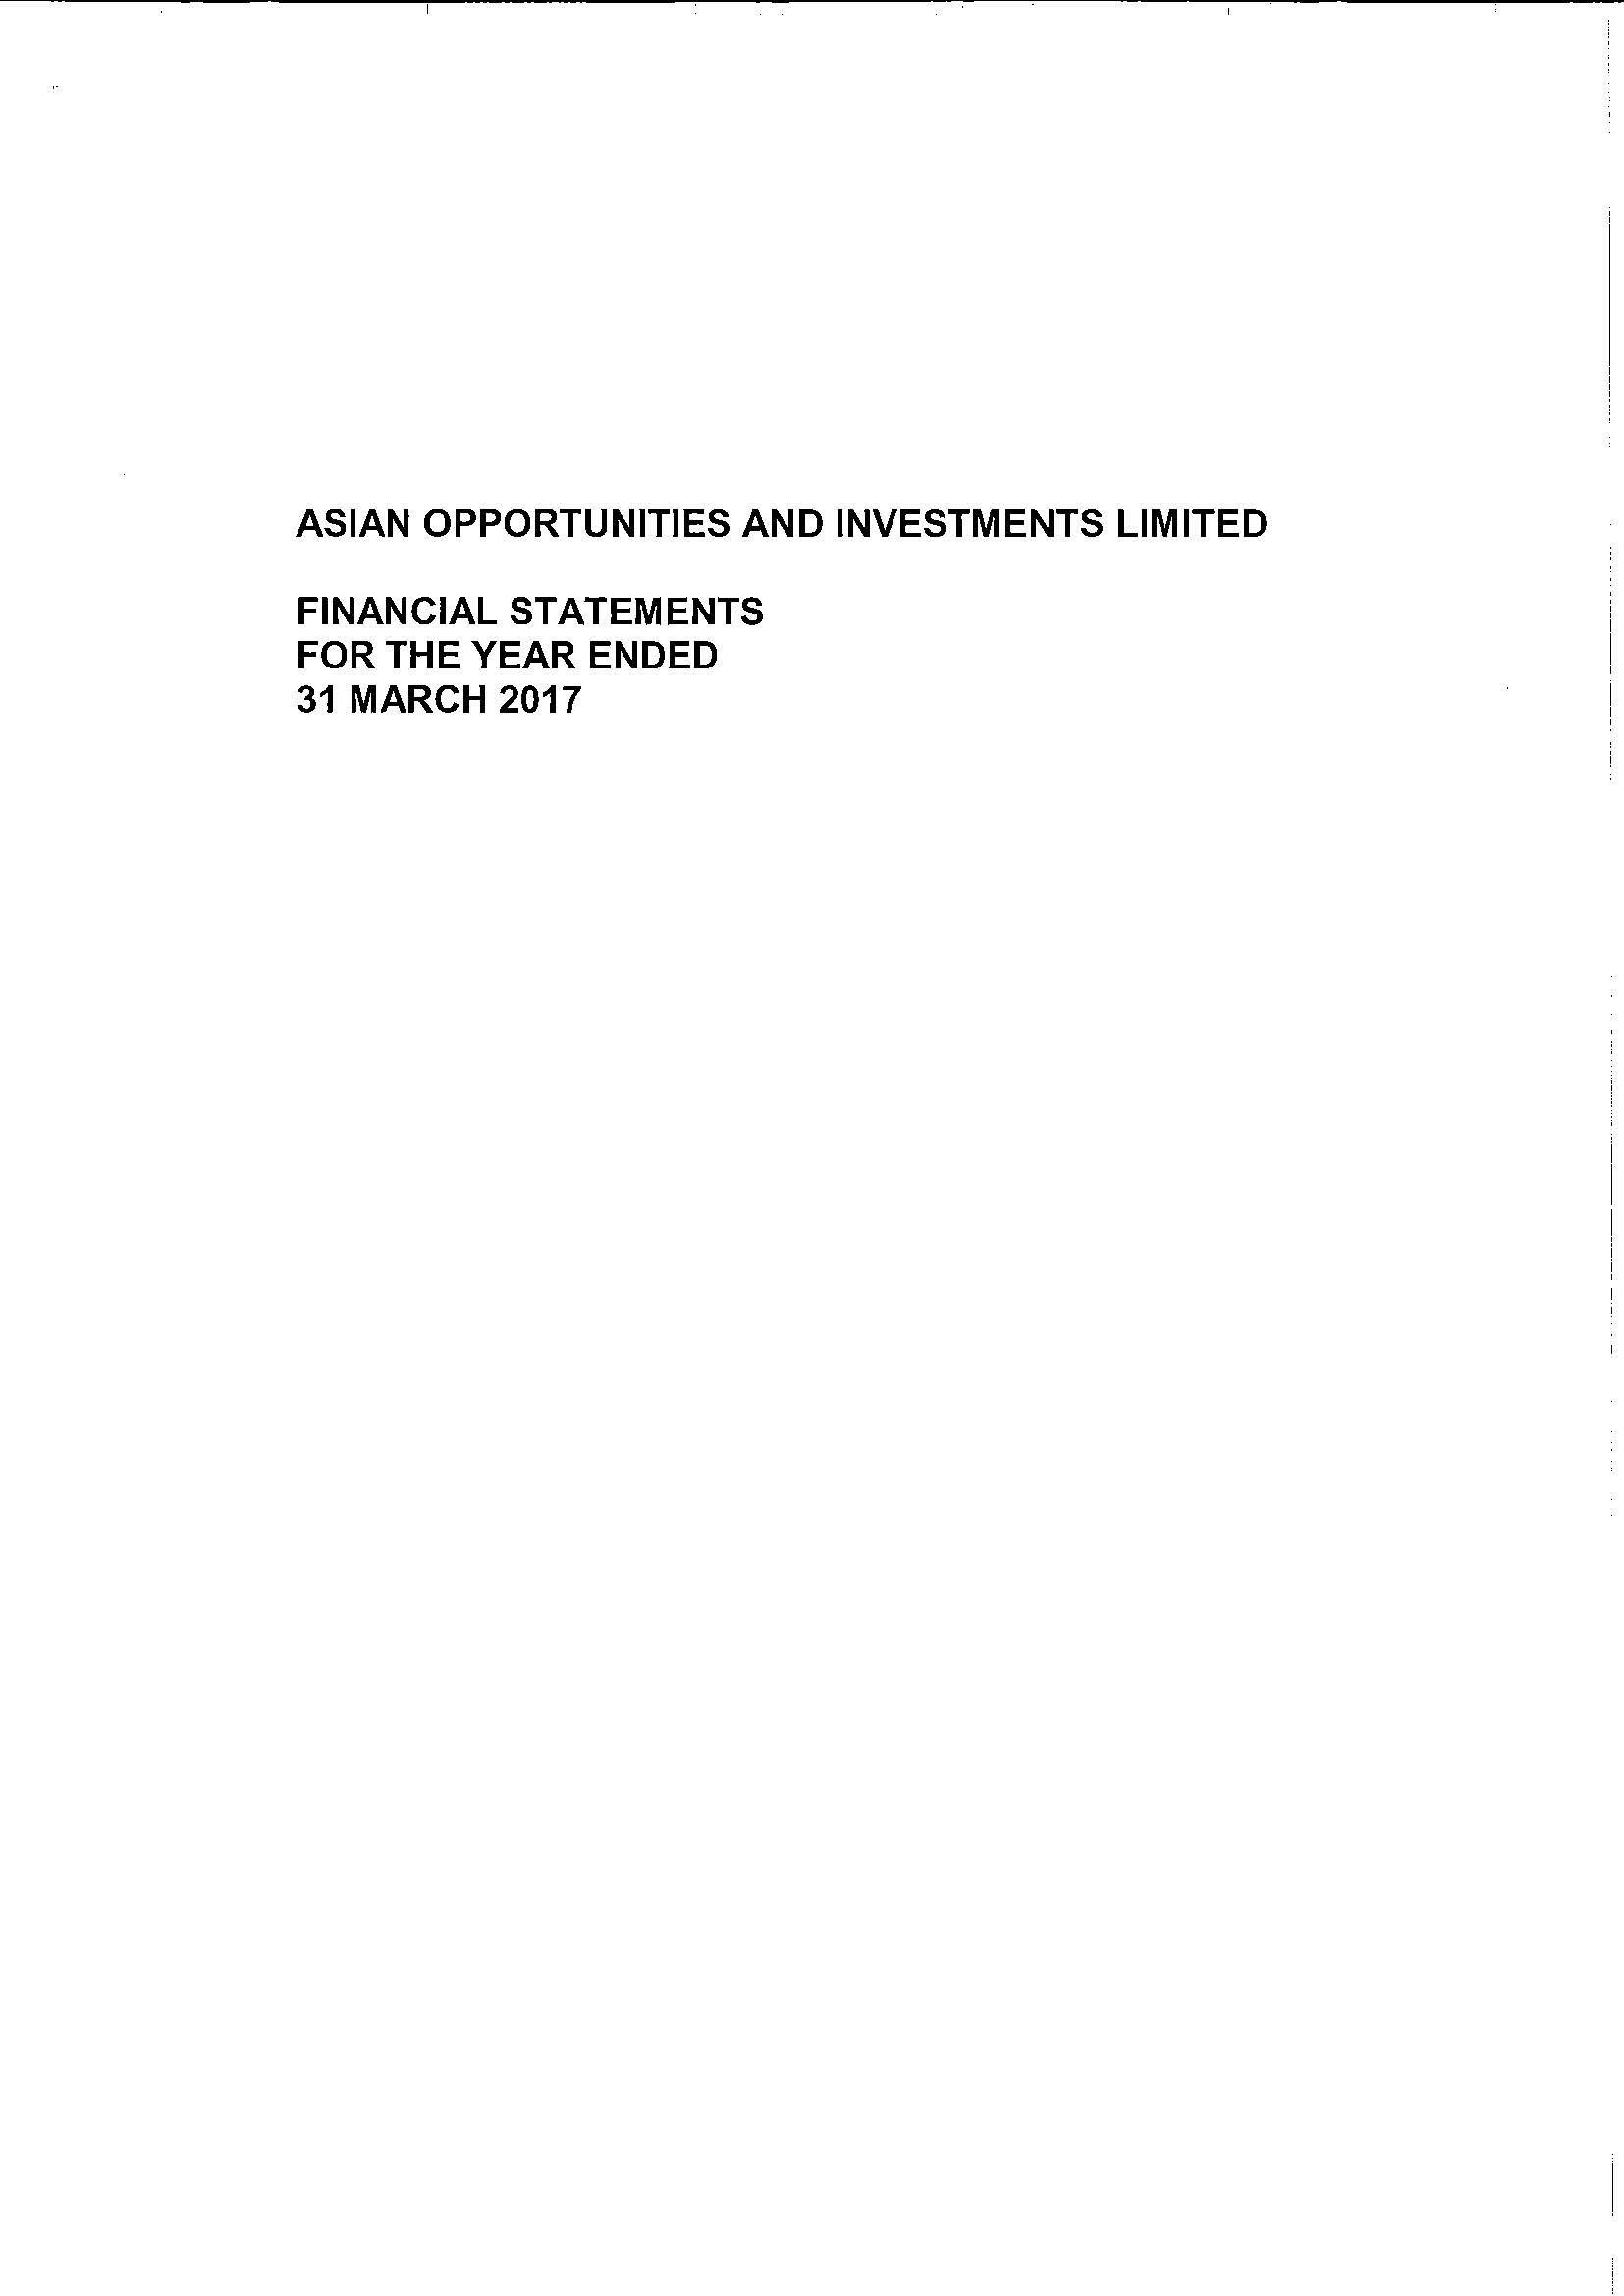 Asian Opportunities and Investments Ltd 2016-2017